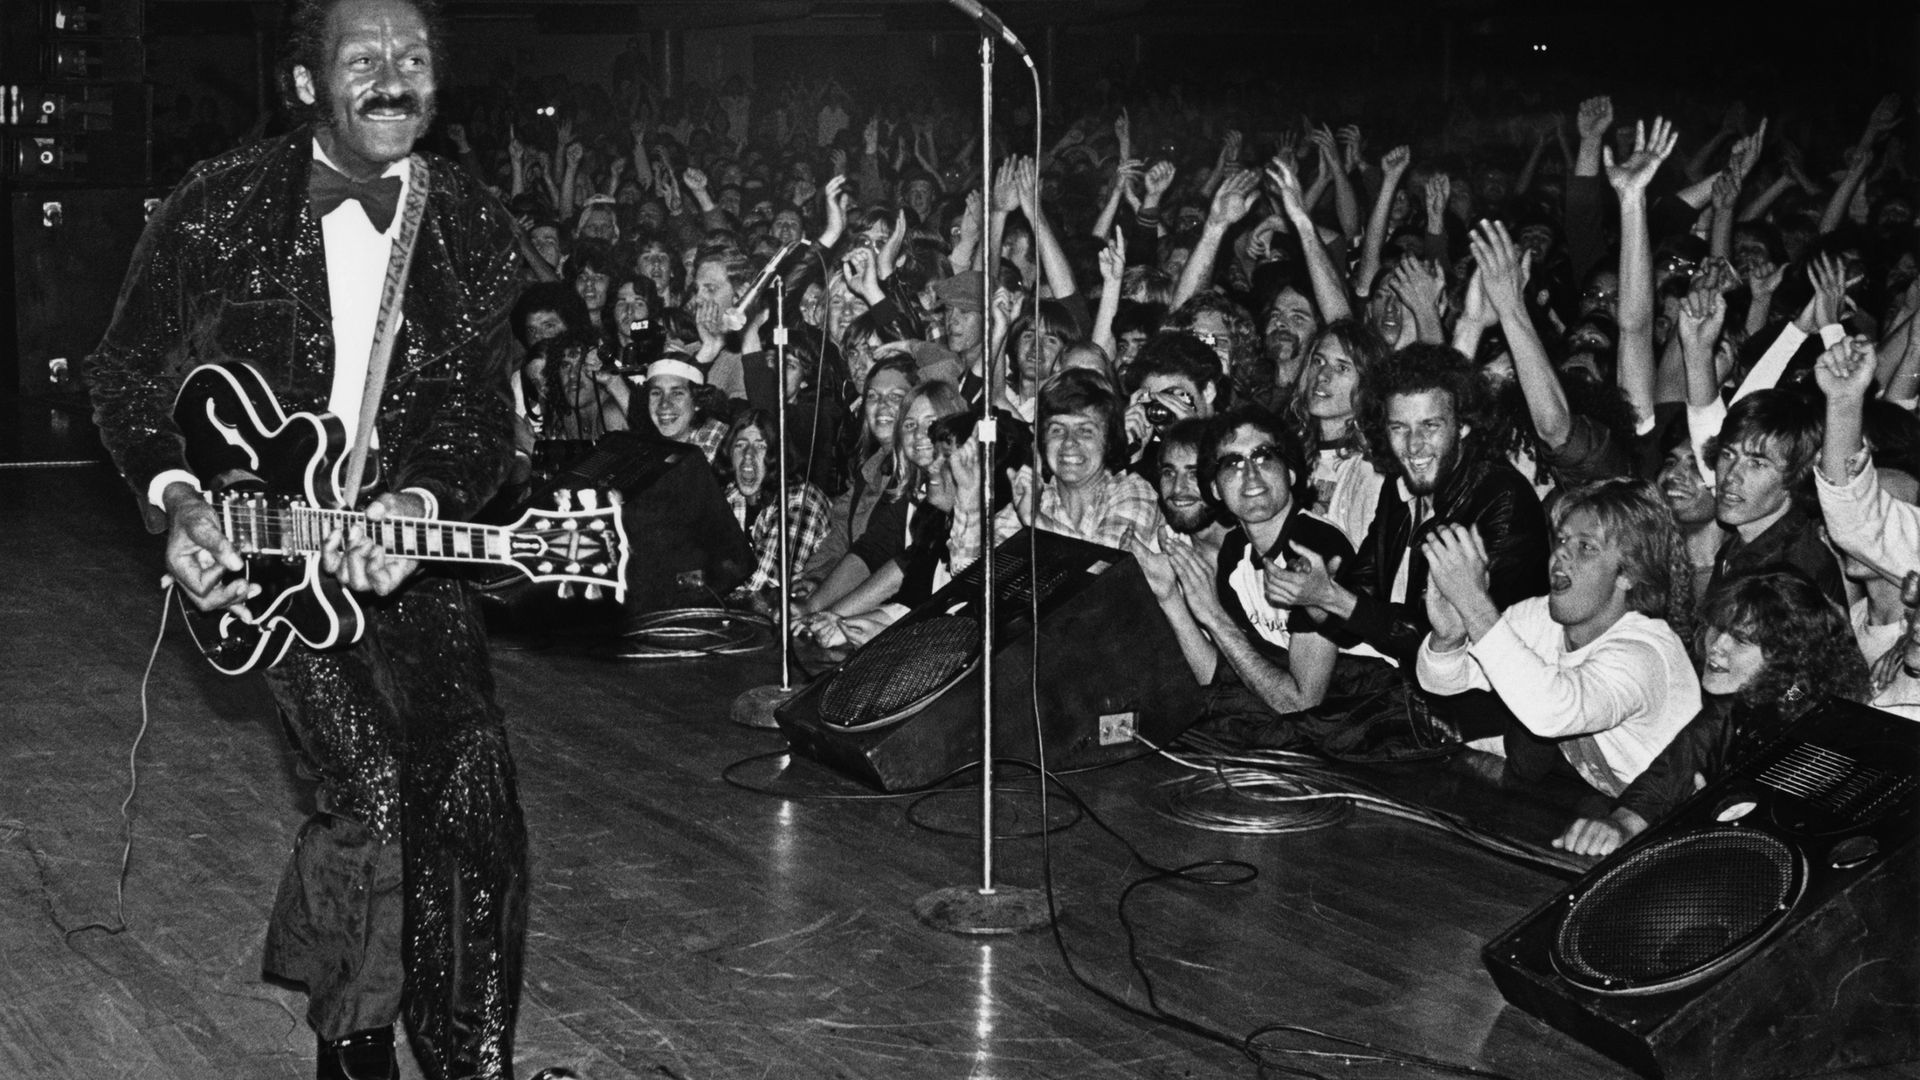 """Chuck Berry struts his signature """"duck walk"""" while playing his Gibson guitar, to the delight of fans, during a 1980 Hollywood, California, concert at the Palladium - Credit: Getty Images"""